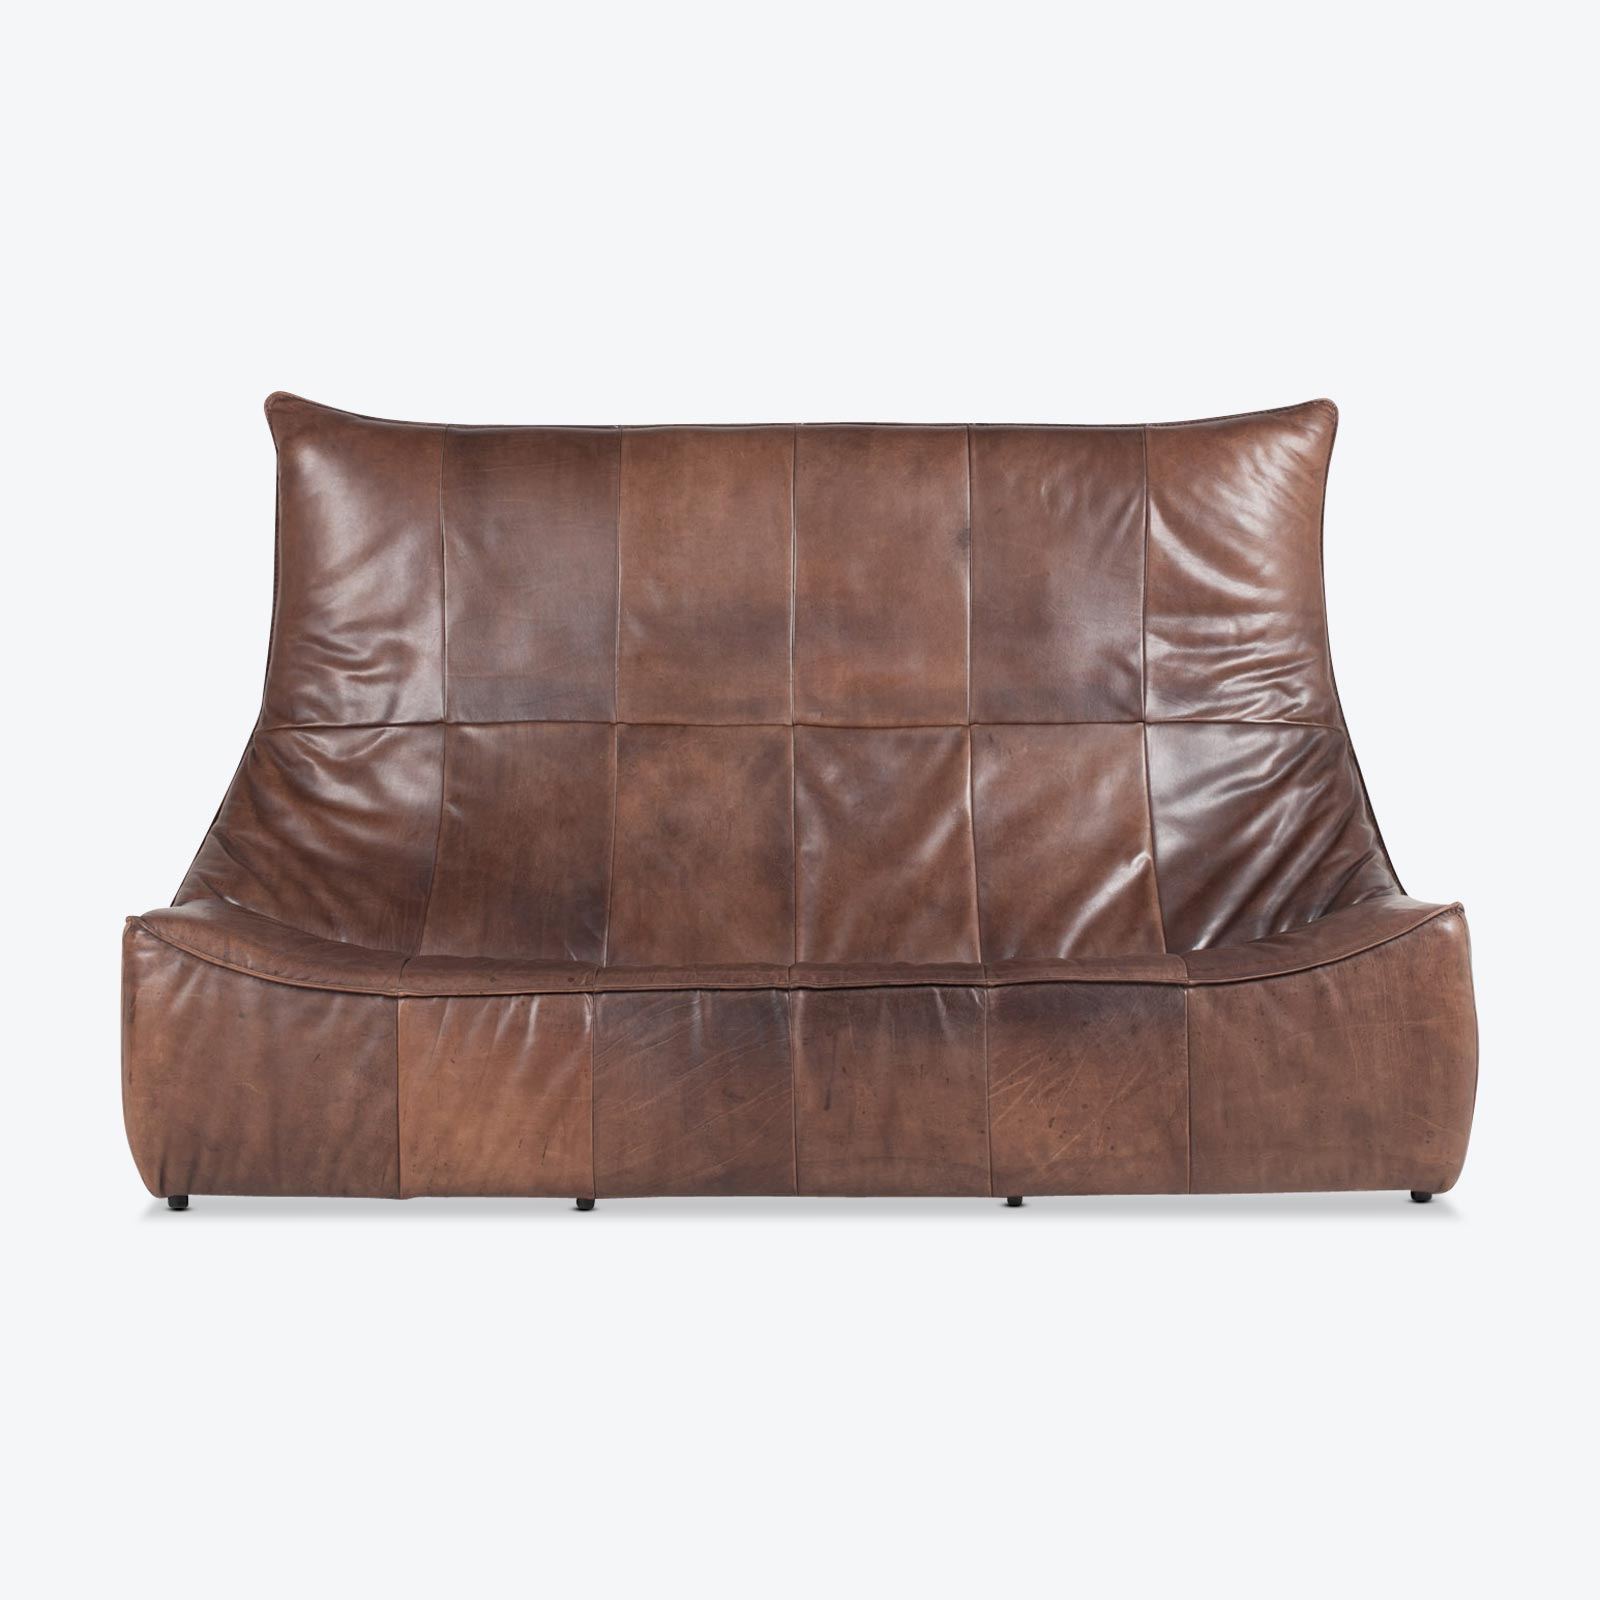 The Rock 3 Seat Sofa By Gerard Van Den Berg For Montis In